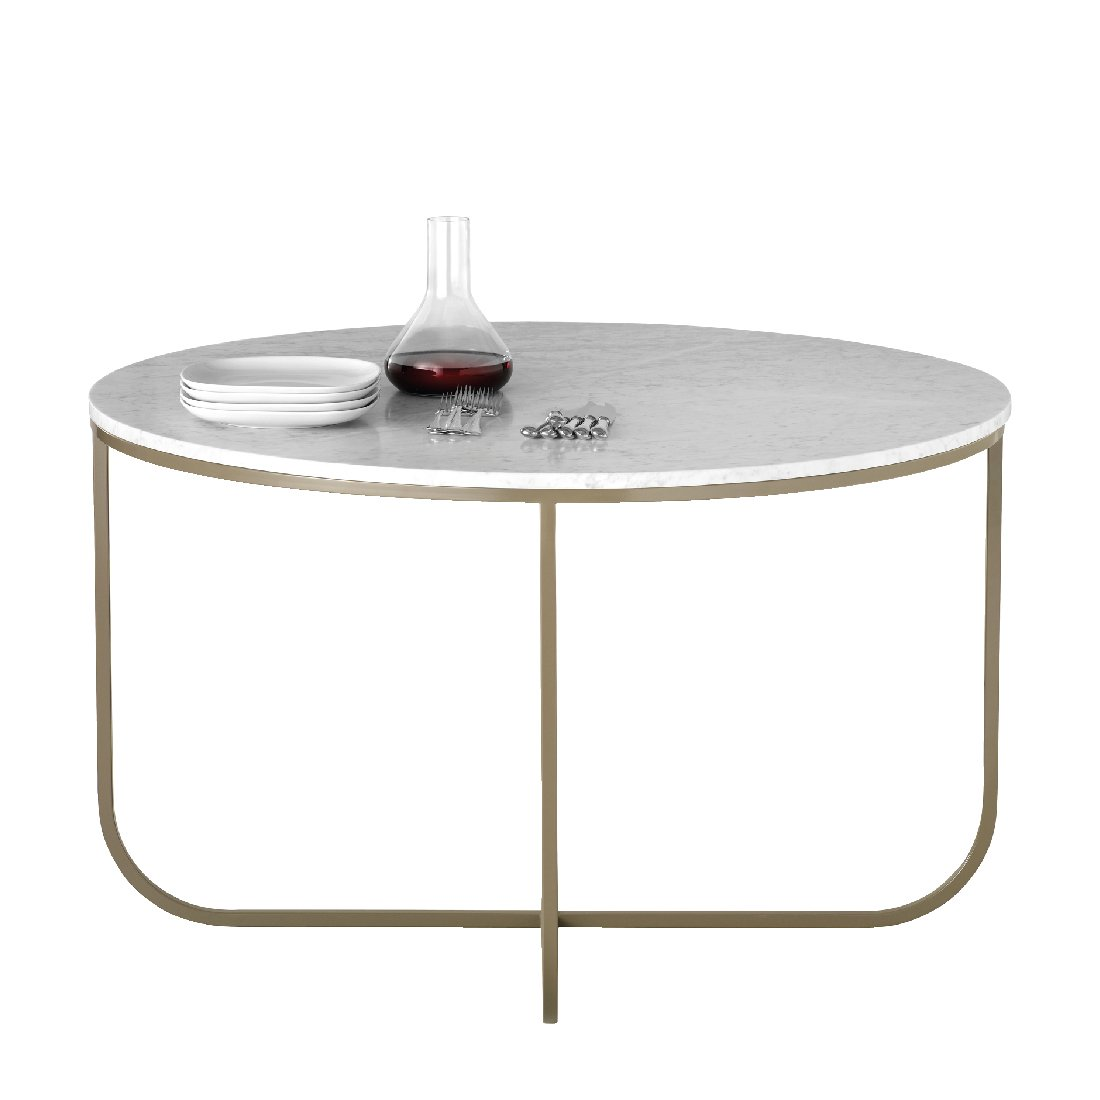 Tati Table Round Tafel - Asplund